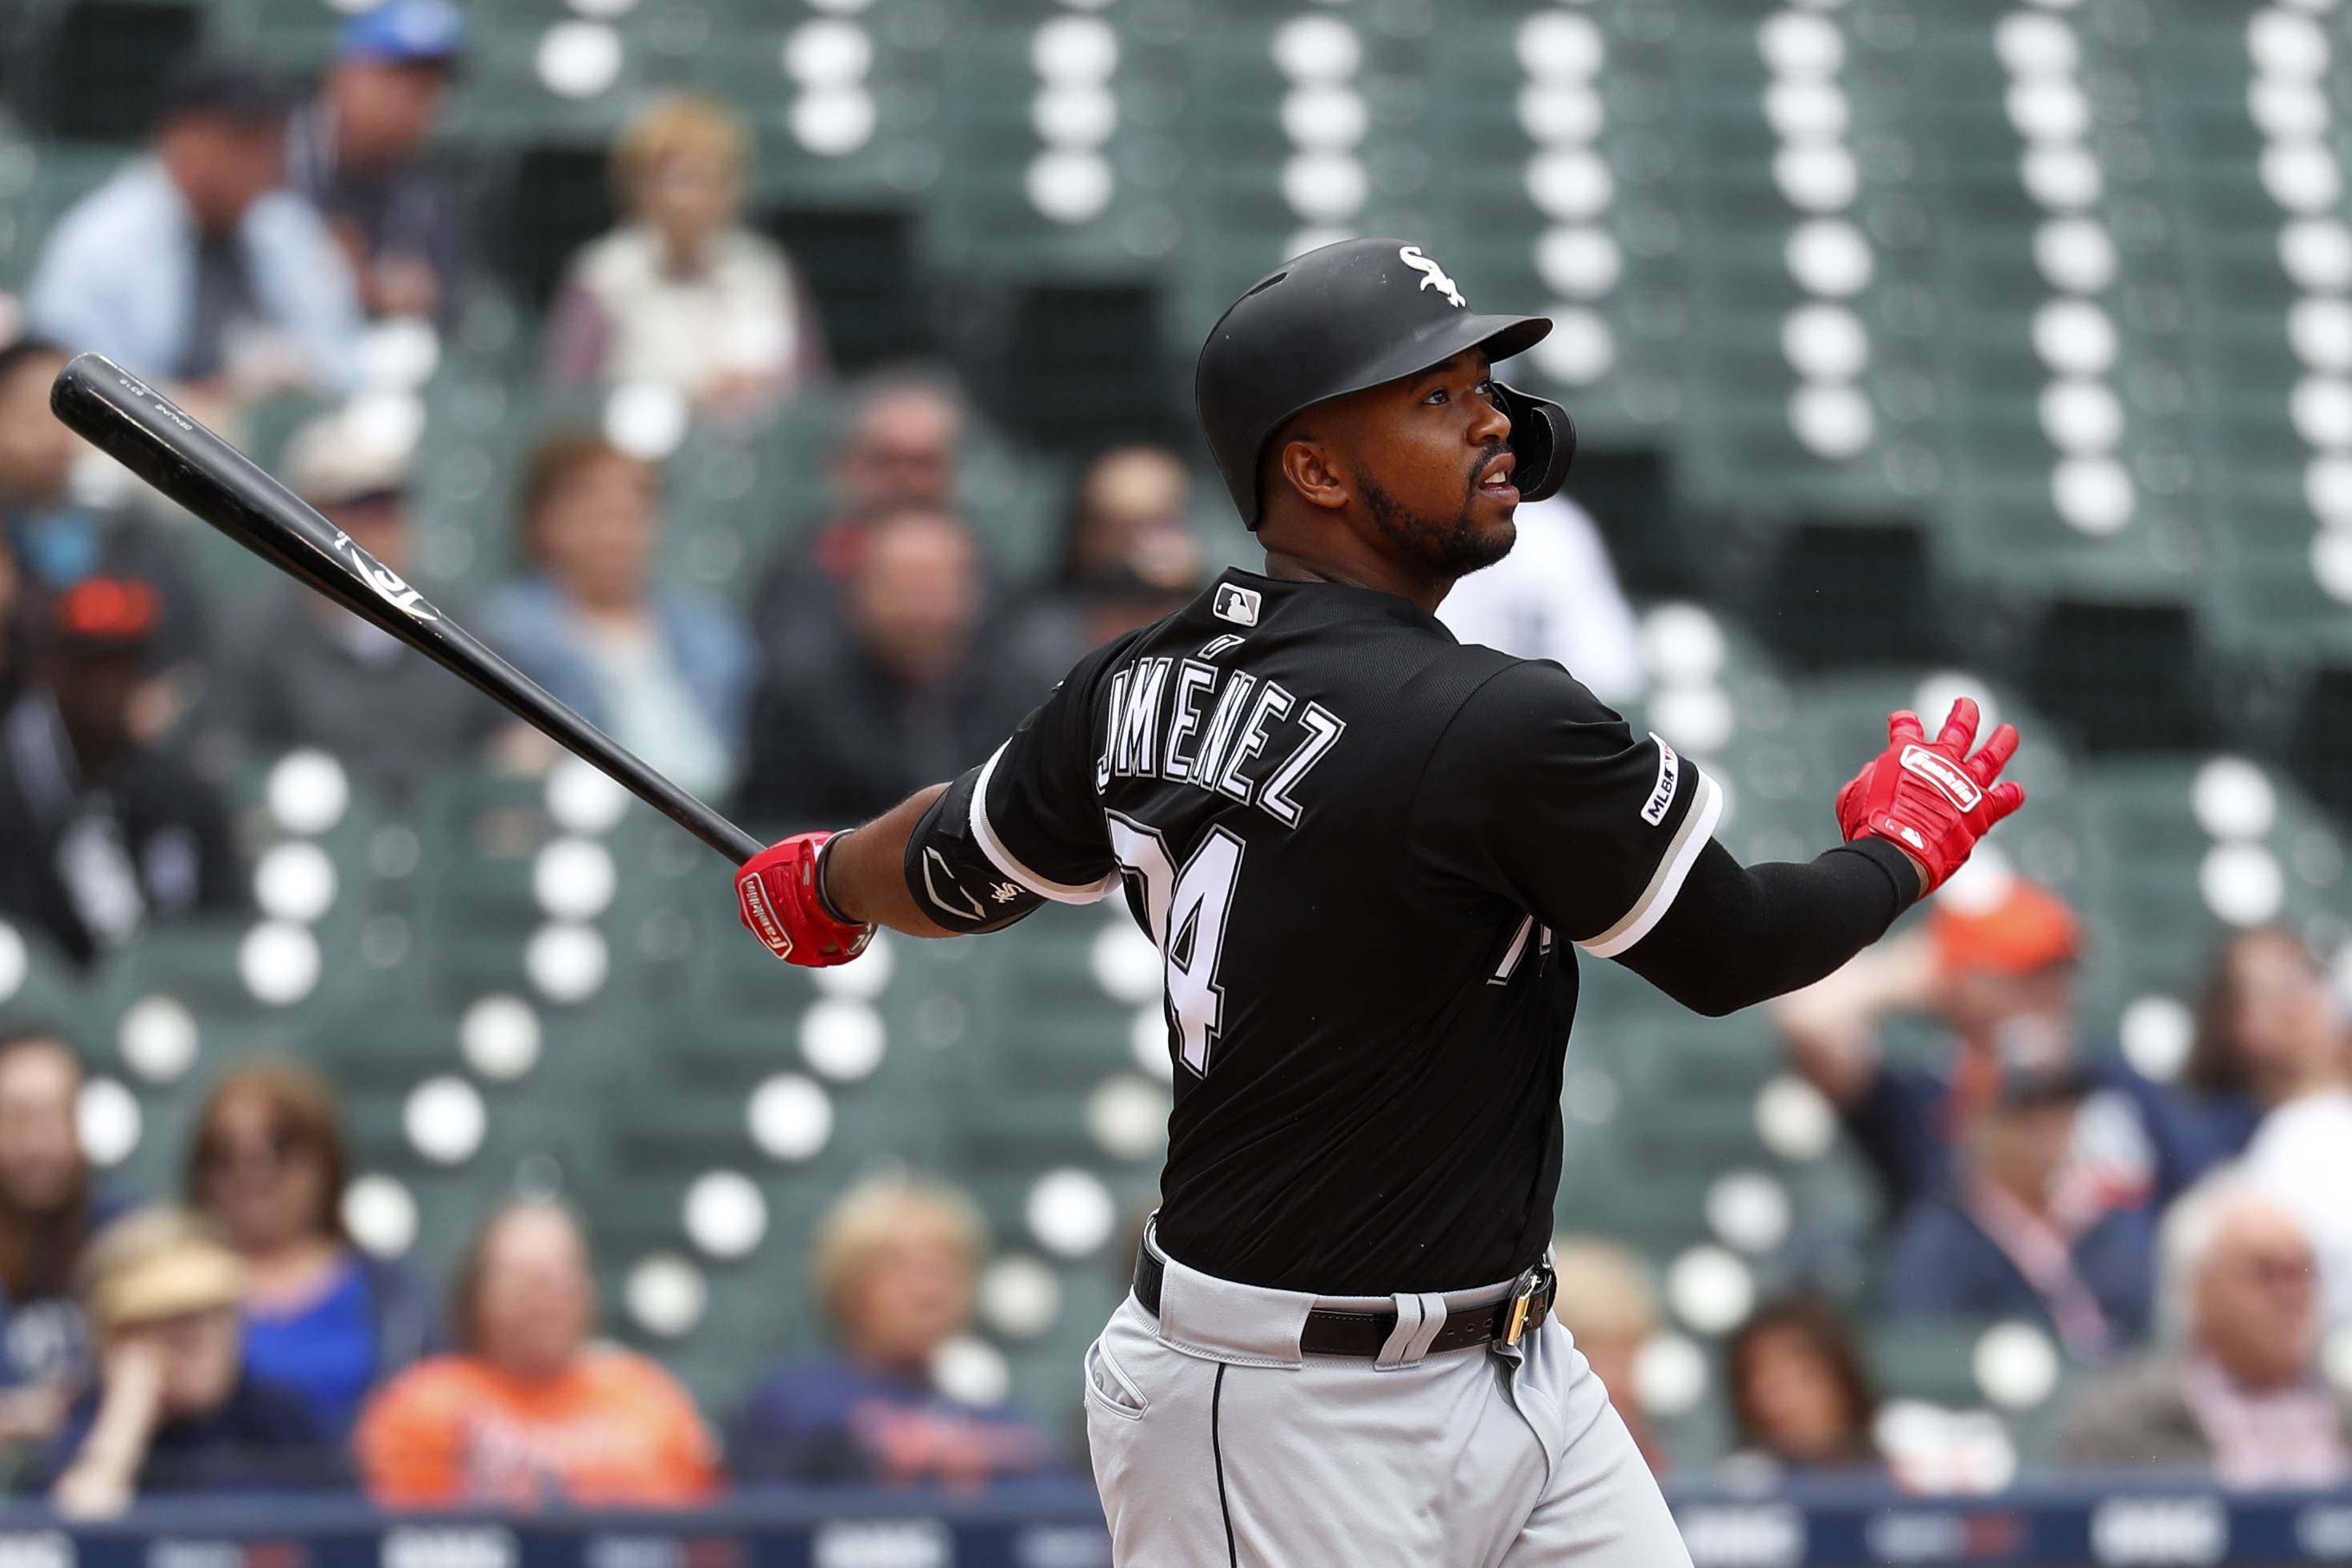 Early Eloy evaluation: White Sox rookie heading in right direction